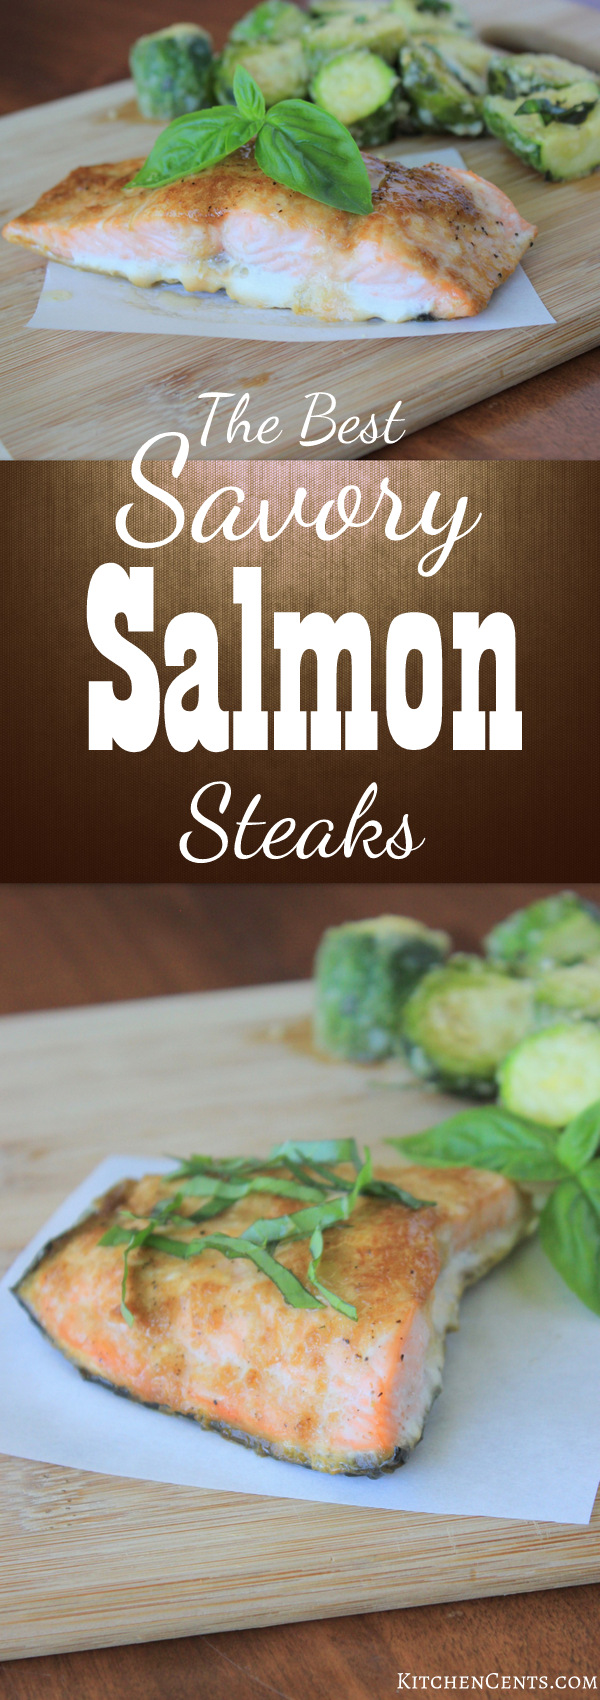 The BEST Savory Salmon Steaks | KitchenCents.com